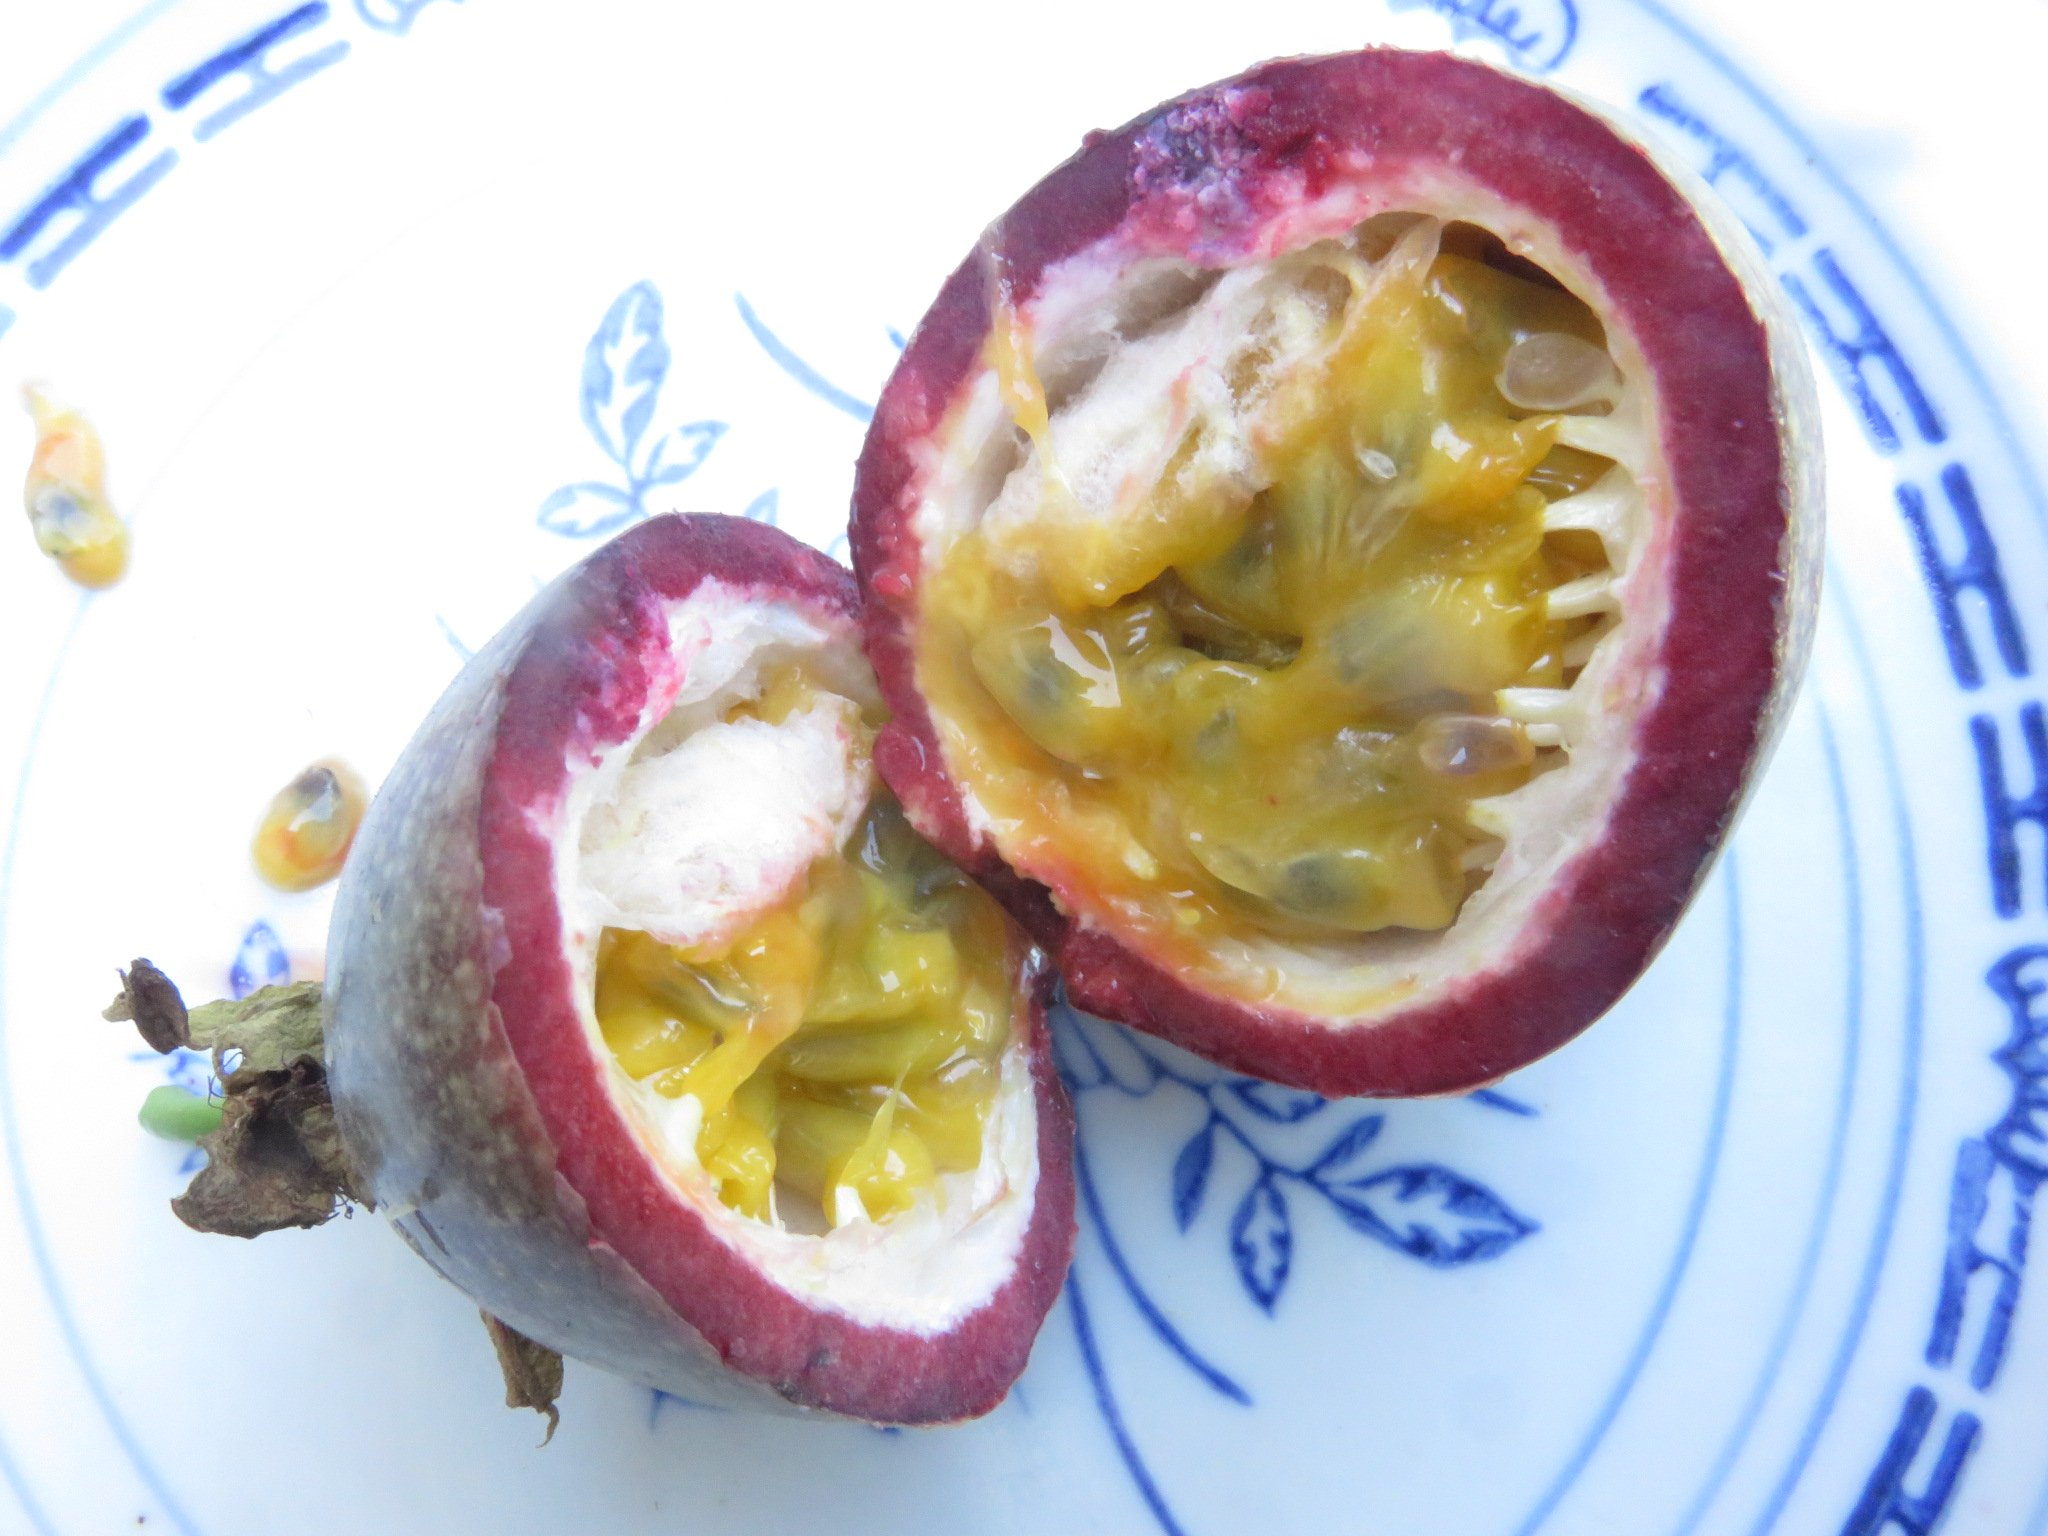 Passion fruit grow well from fresh seed.